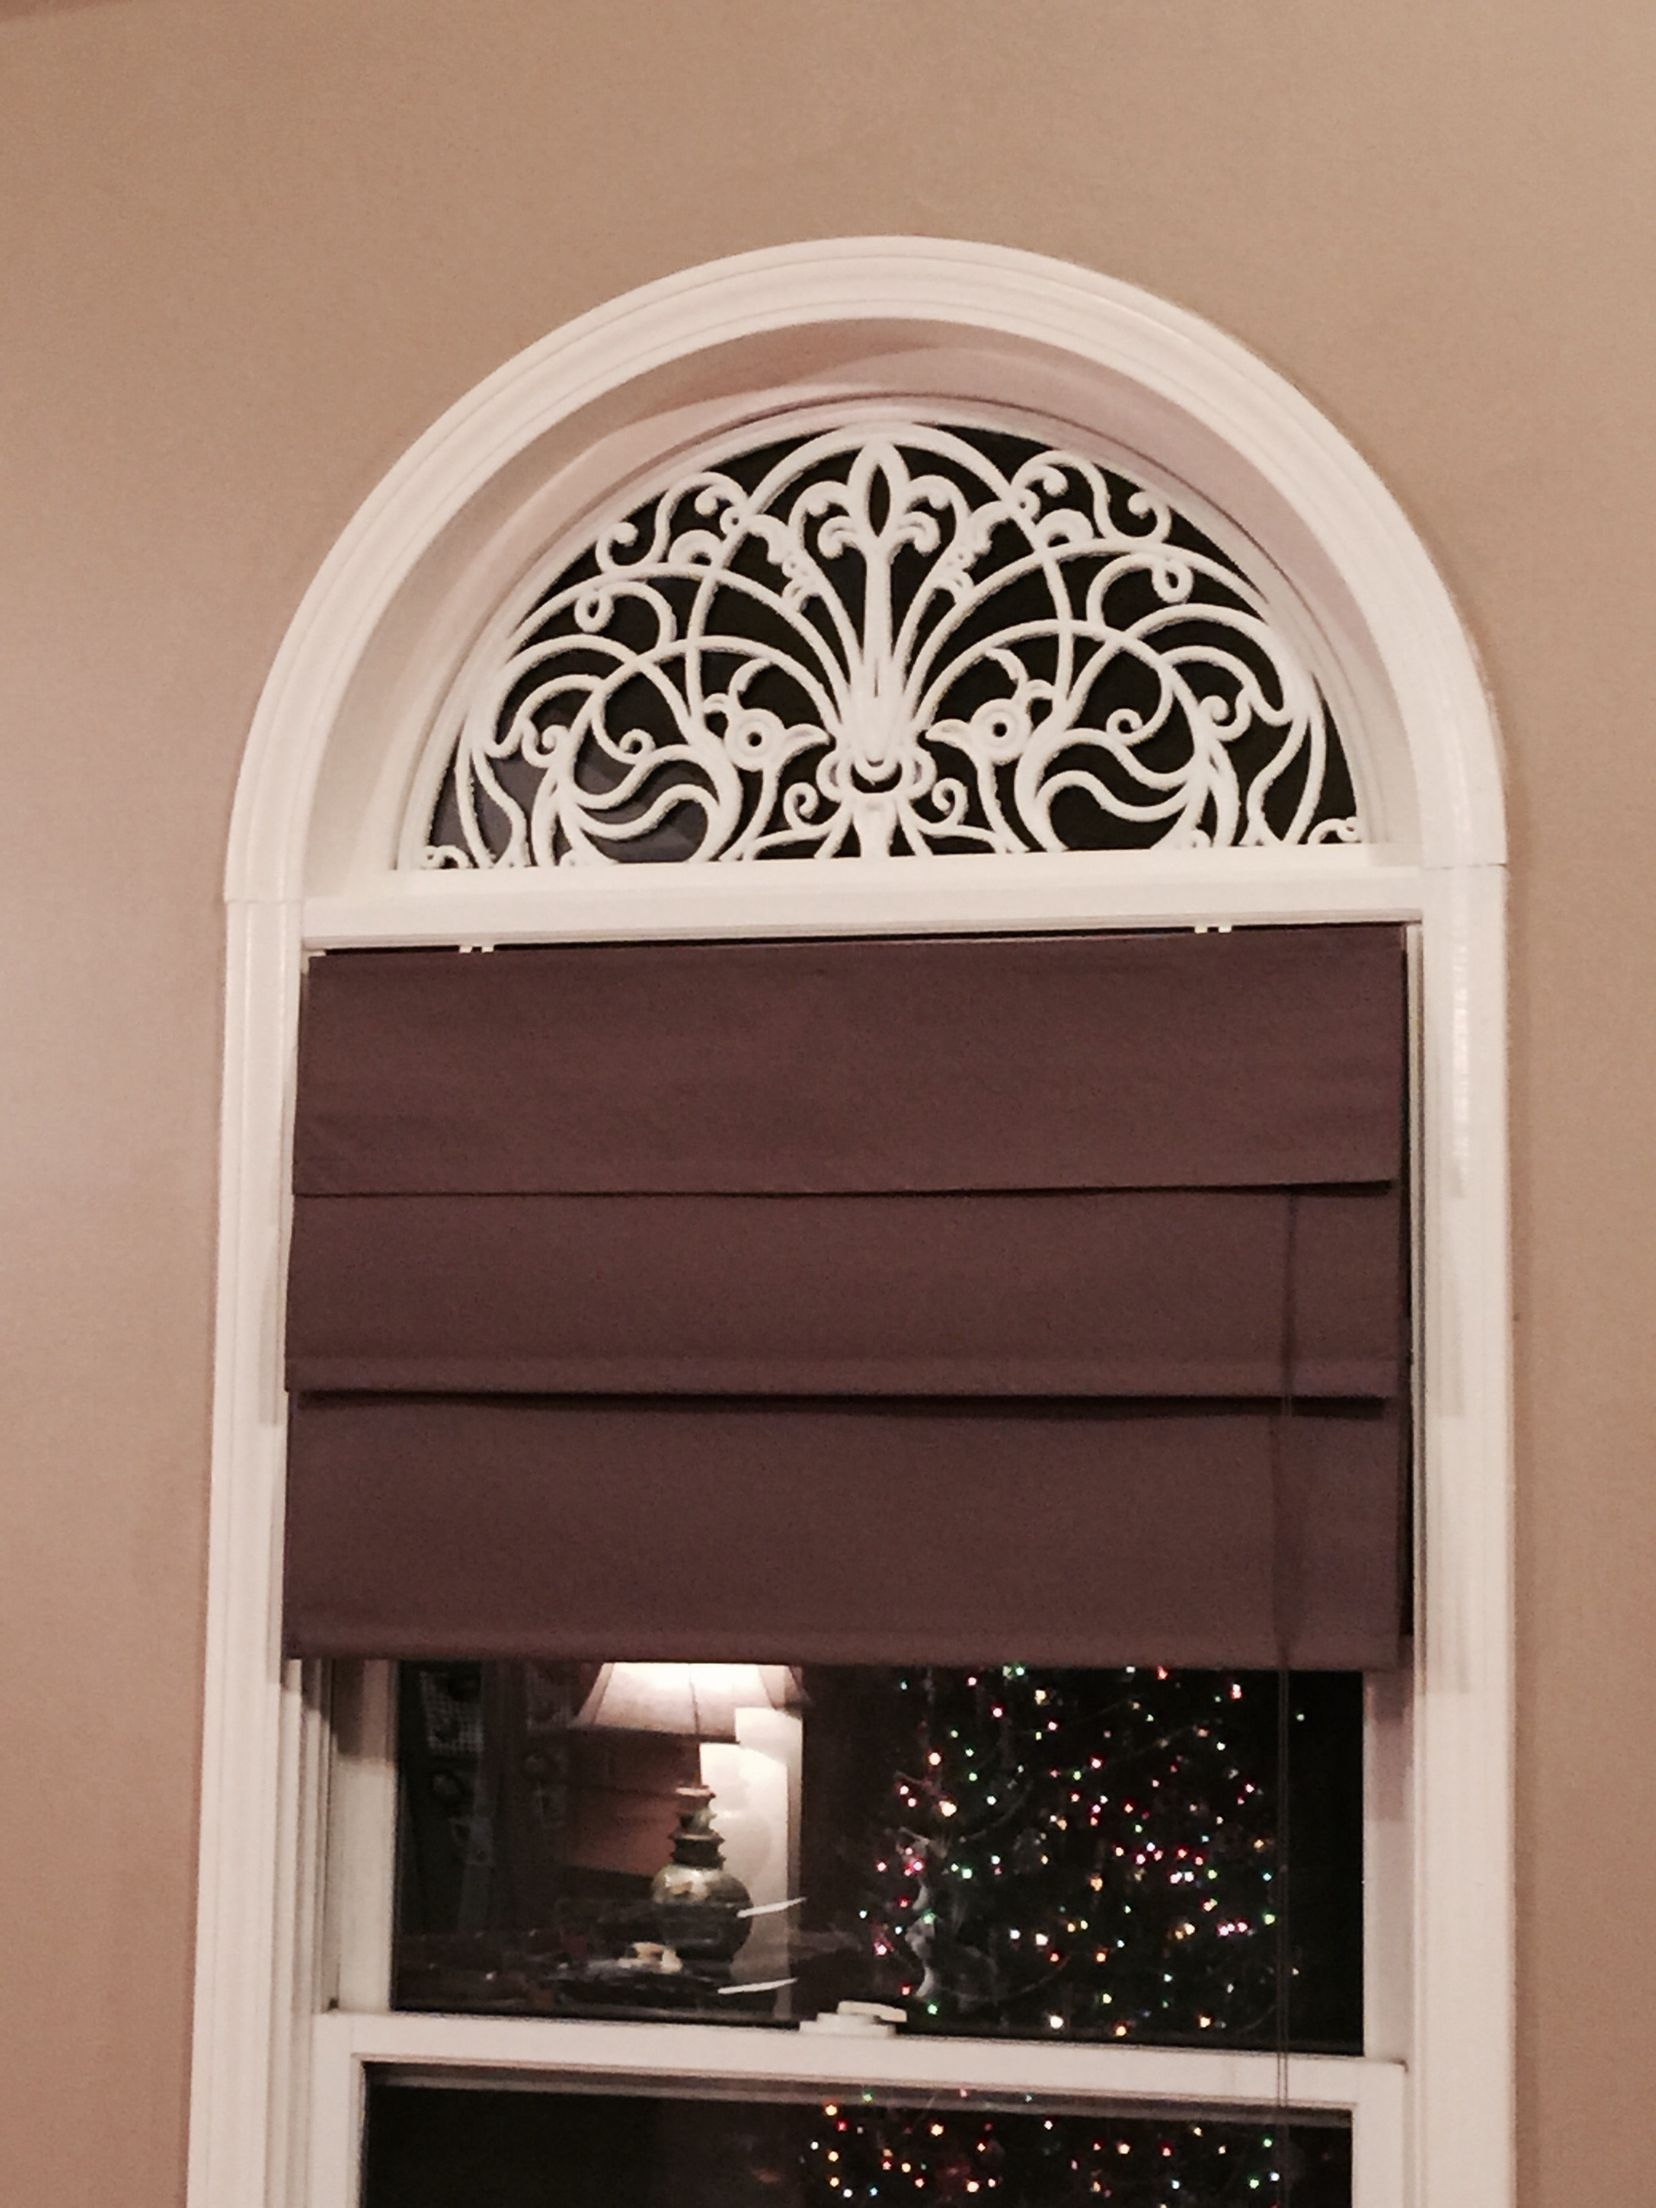 Diy Faux Wrought Iron Arch For Windows Using Rubber Door